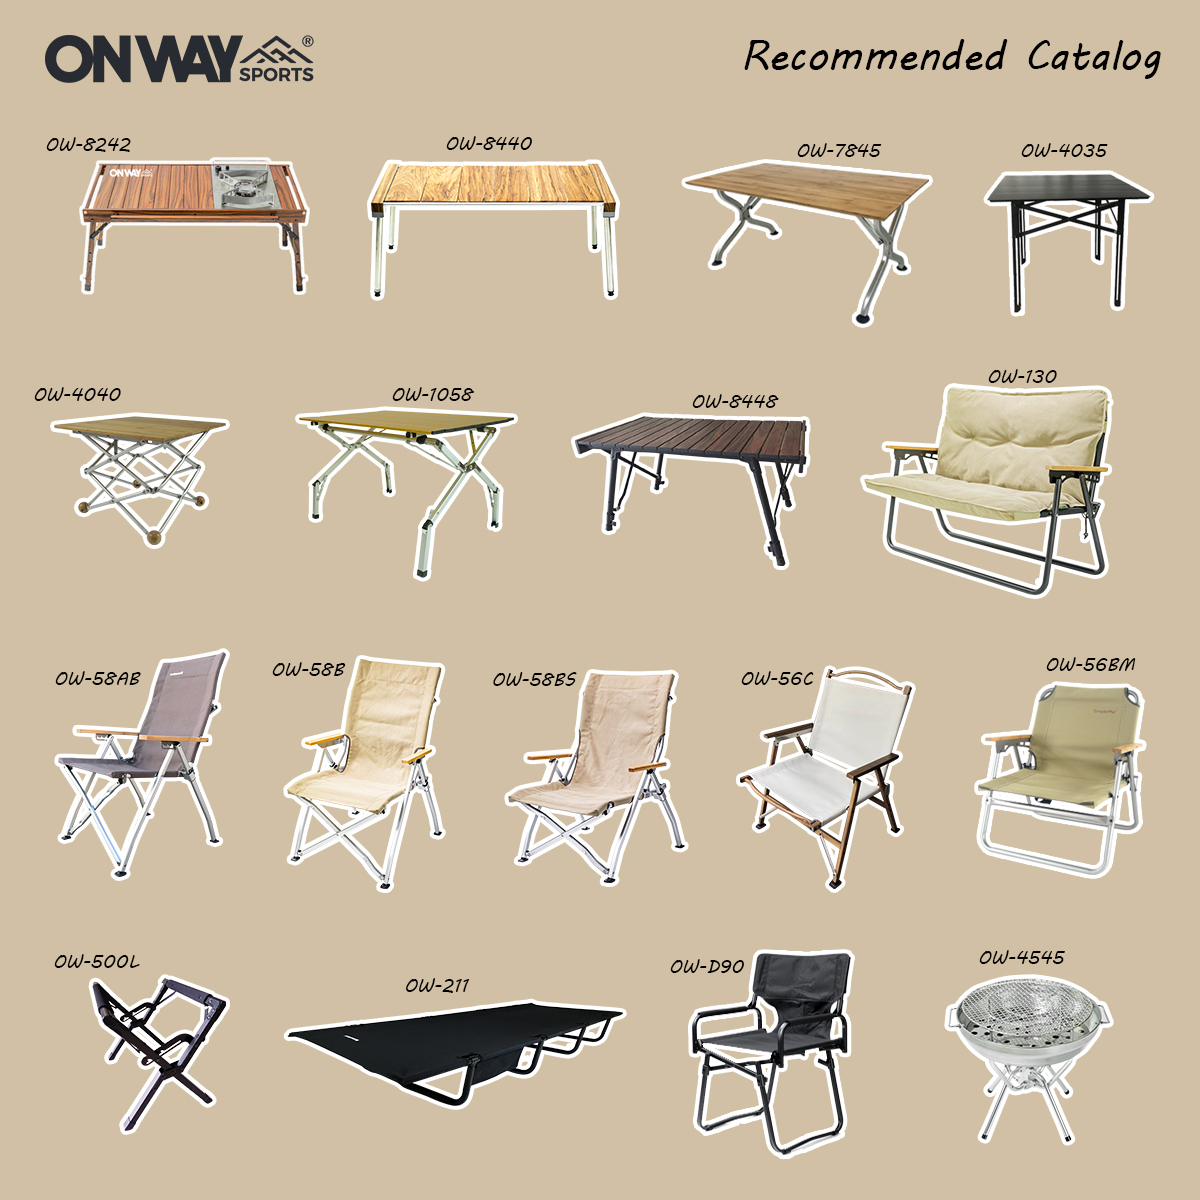 onwaysports new products